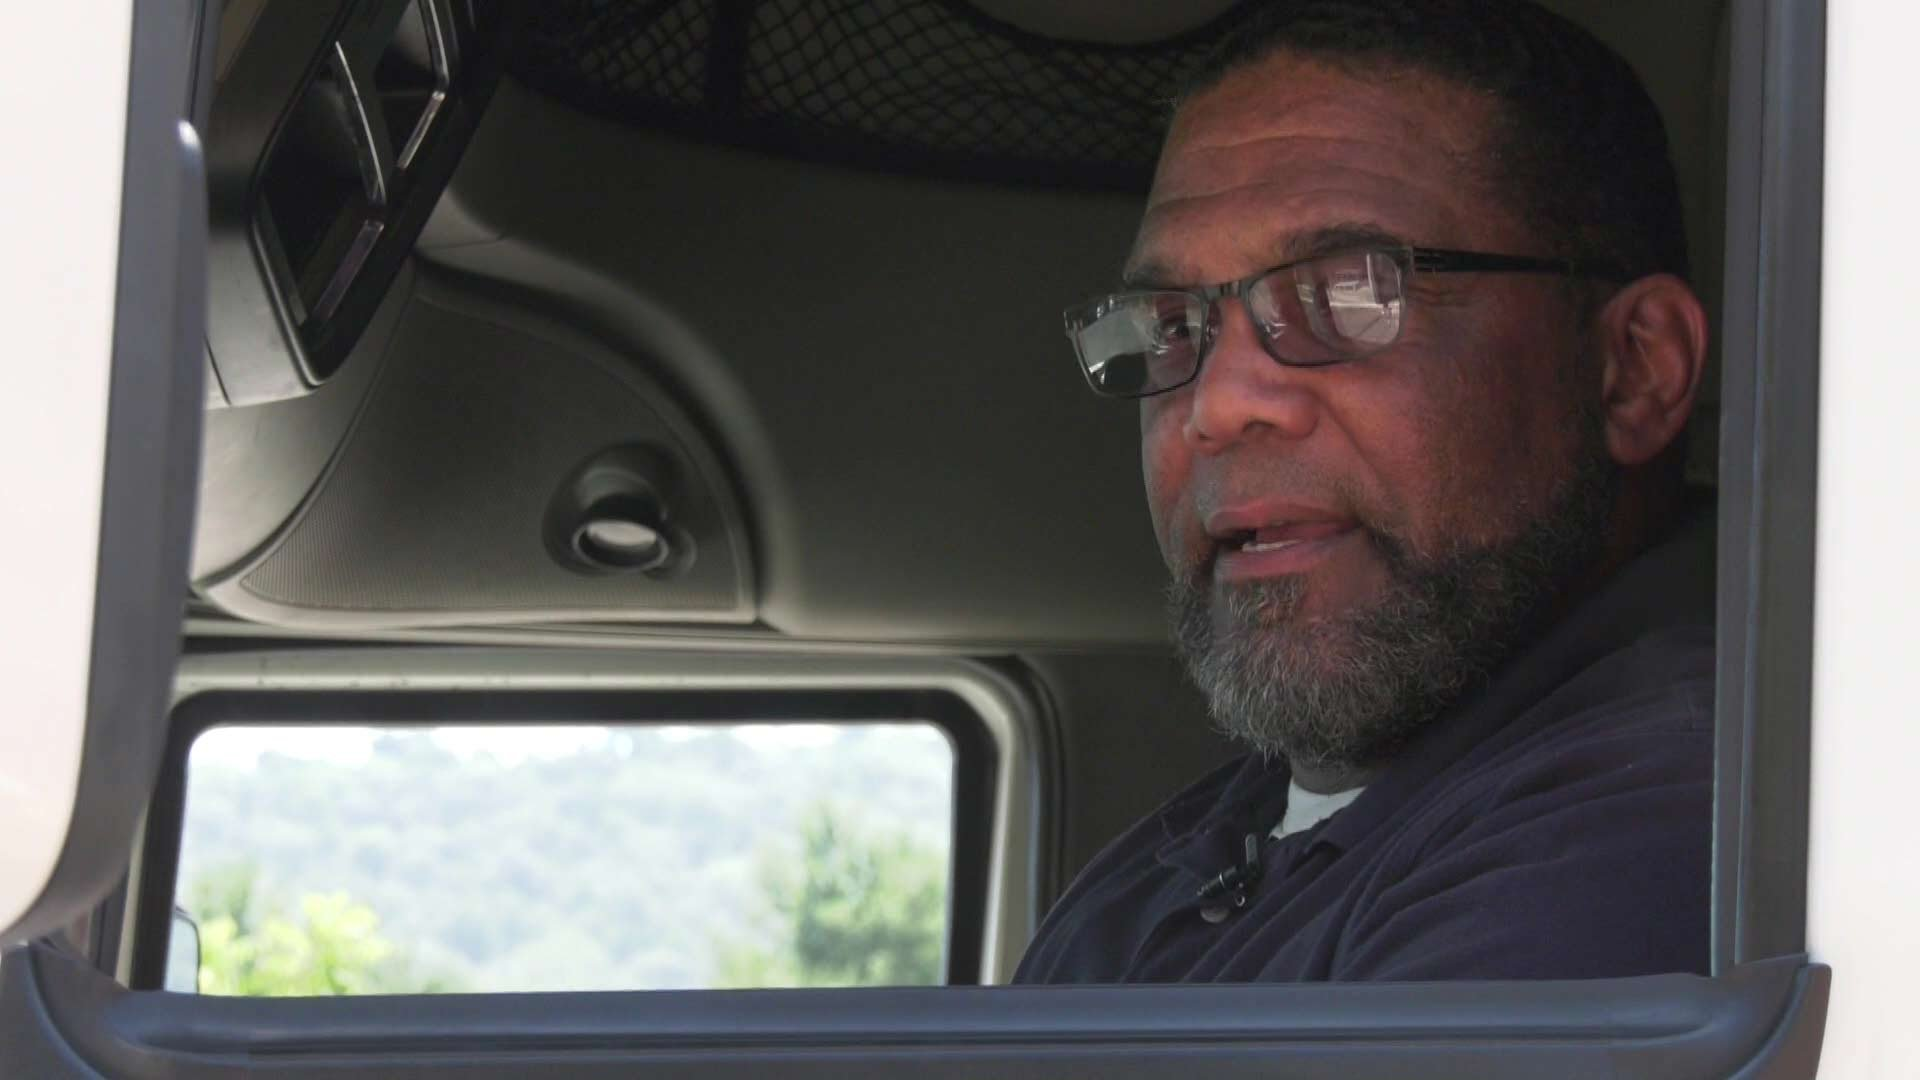 Truck driver Timothy Jackson is getting his license renewed.